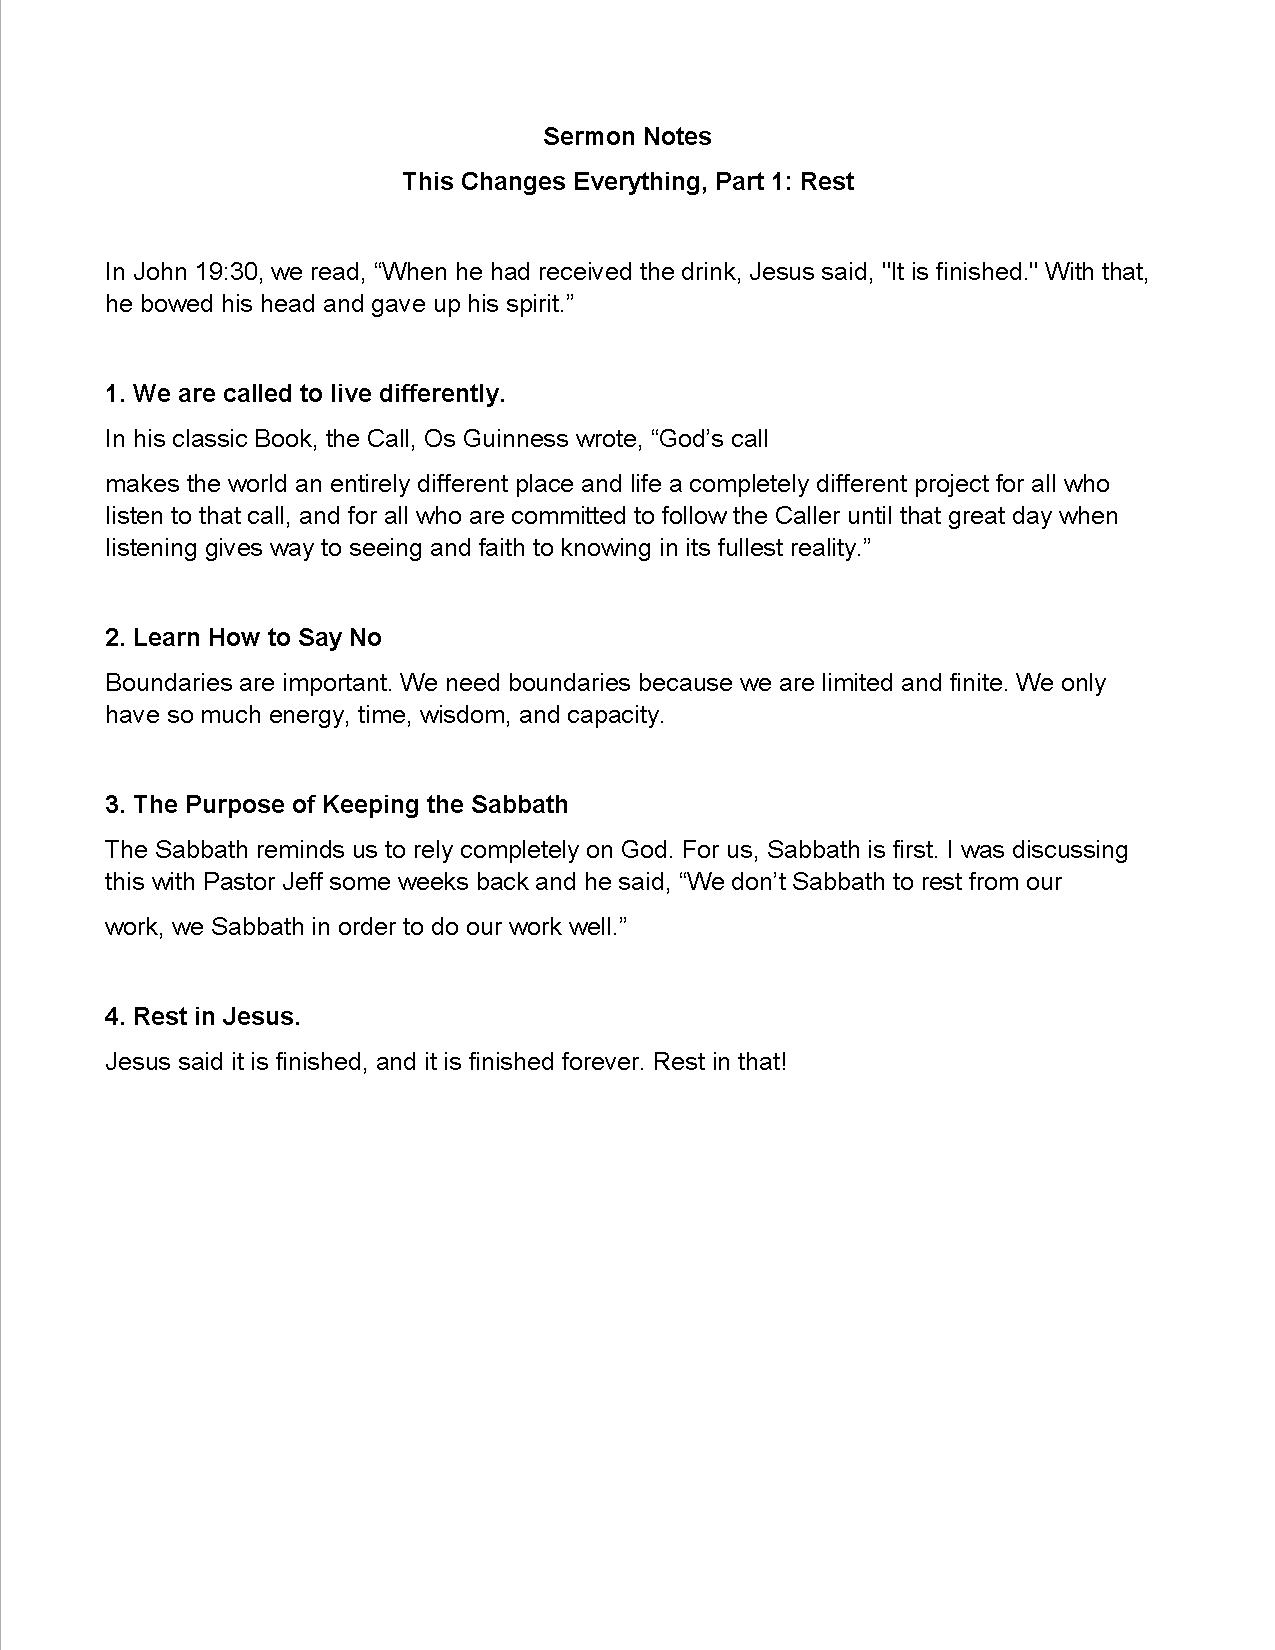 Sermon Notes April 28.jpg